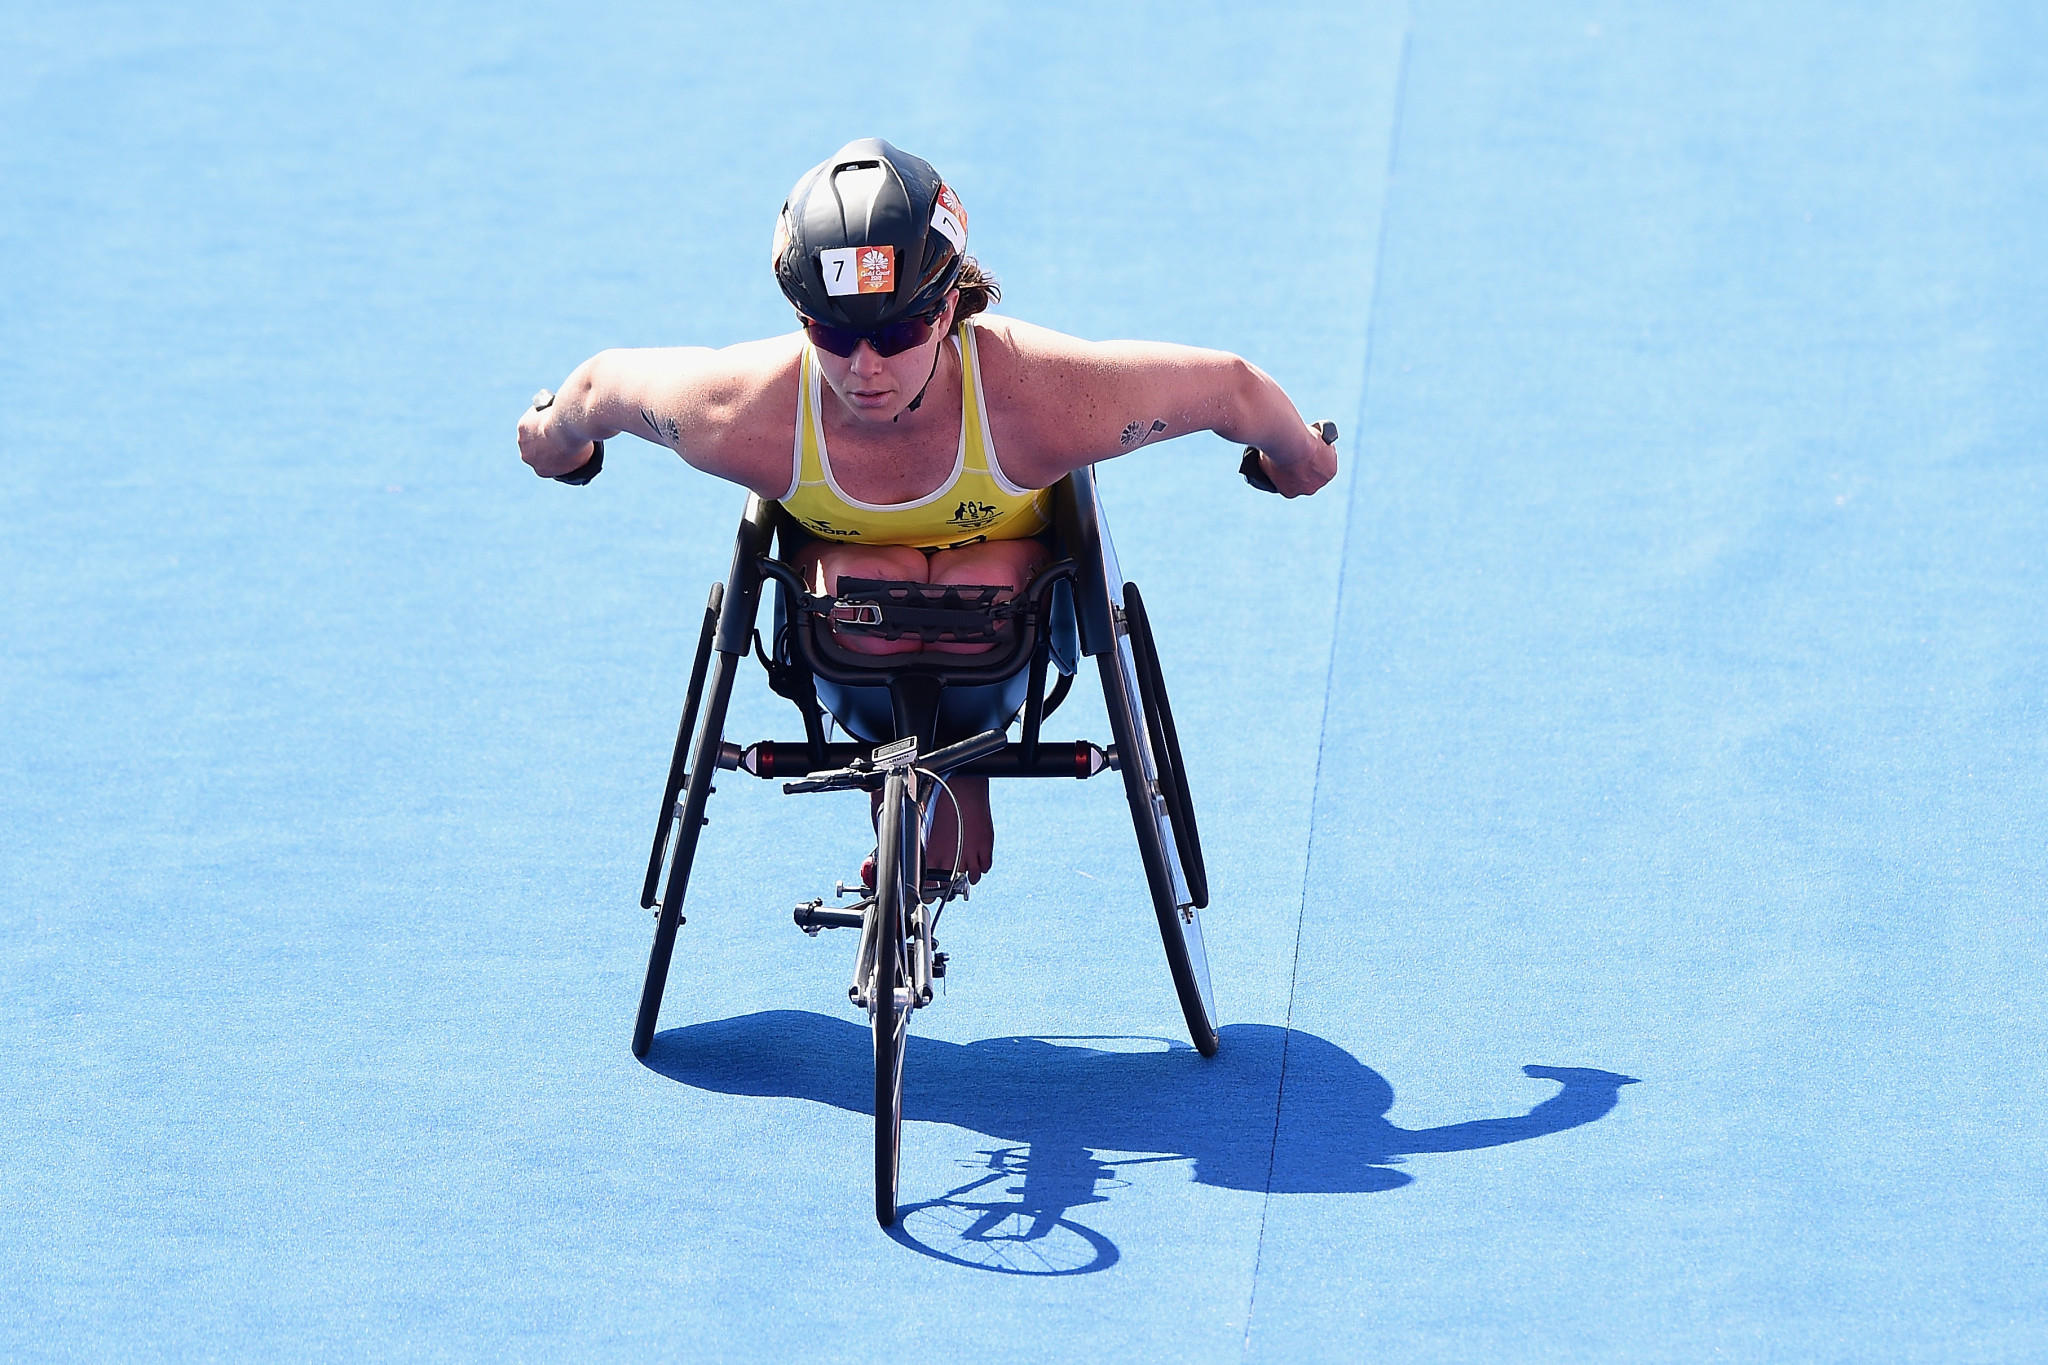 Tokyo 2020 qualification points at stake for Para-triathletes at Oceania Championships